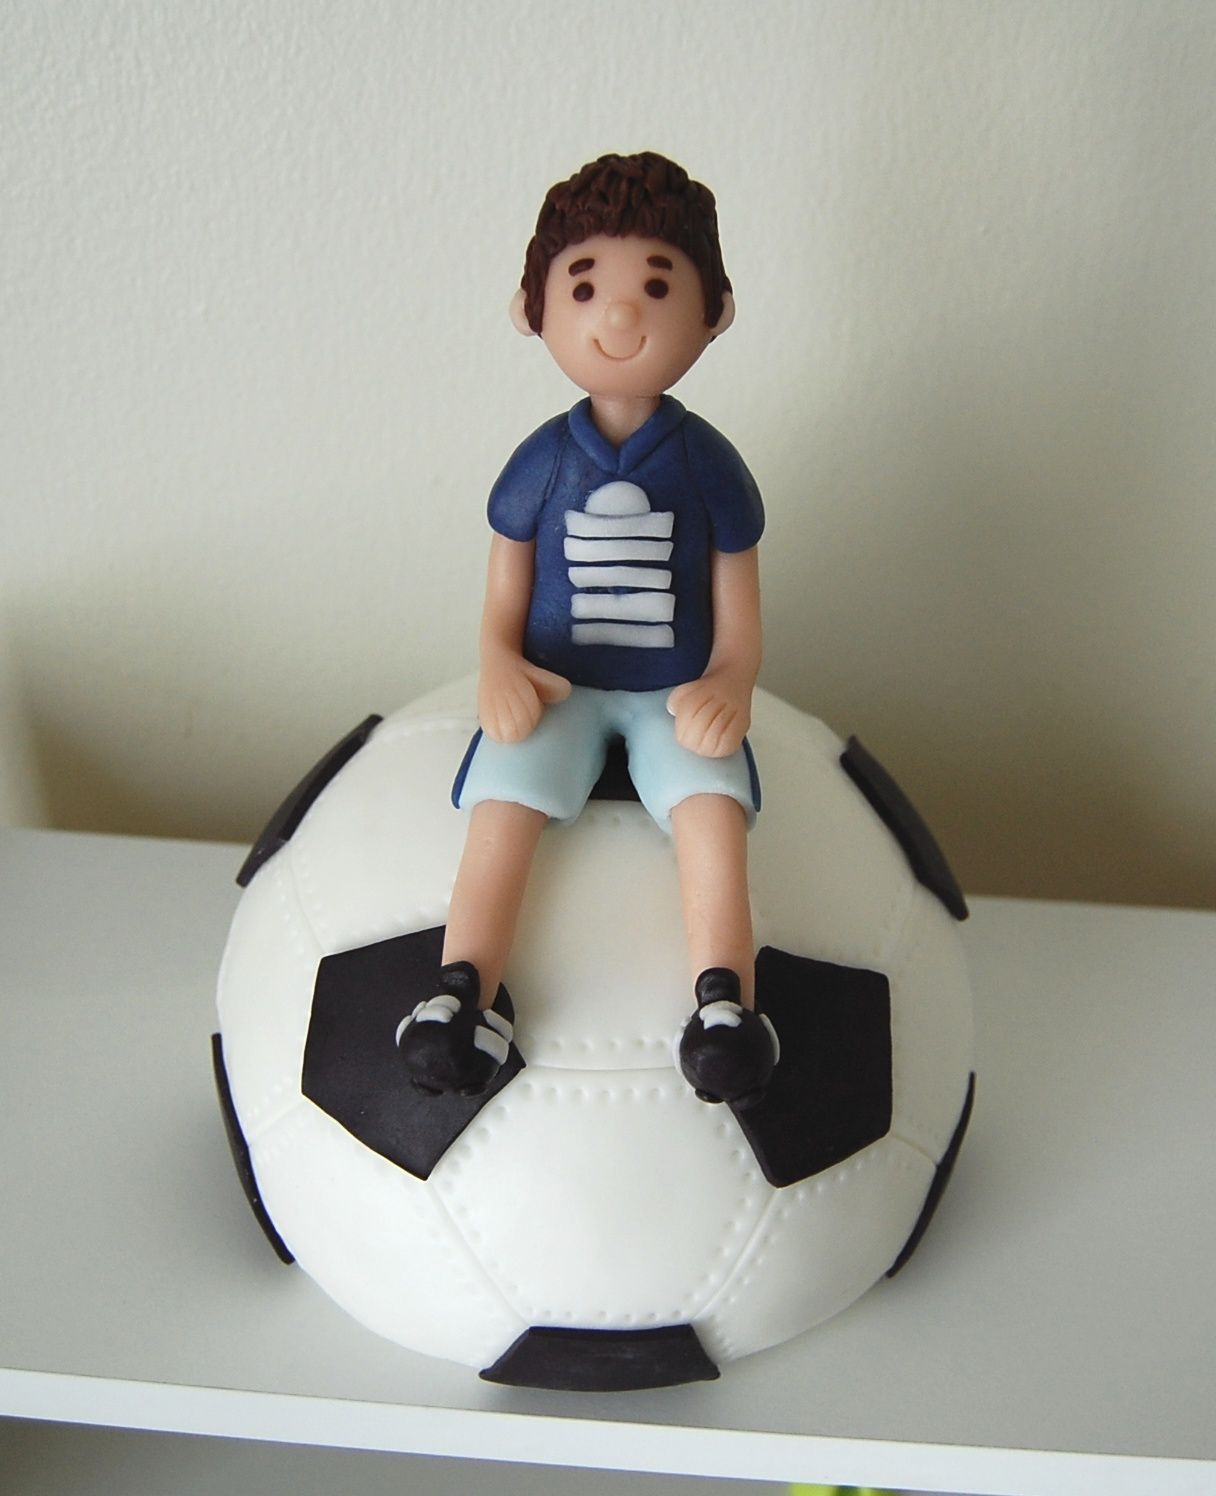 Customized Soccer Theme Cake Topper By Jollitops Sports Themed Cakes Soccer Theme Themed Cakes